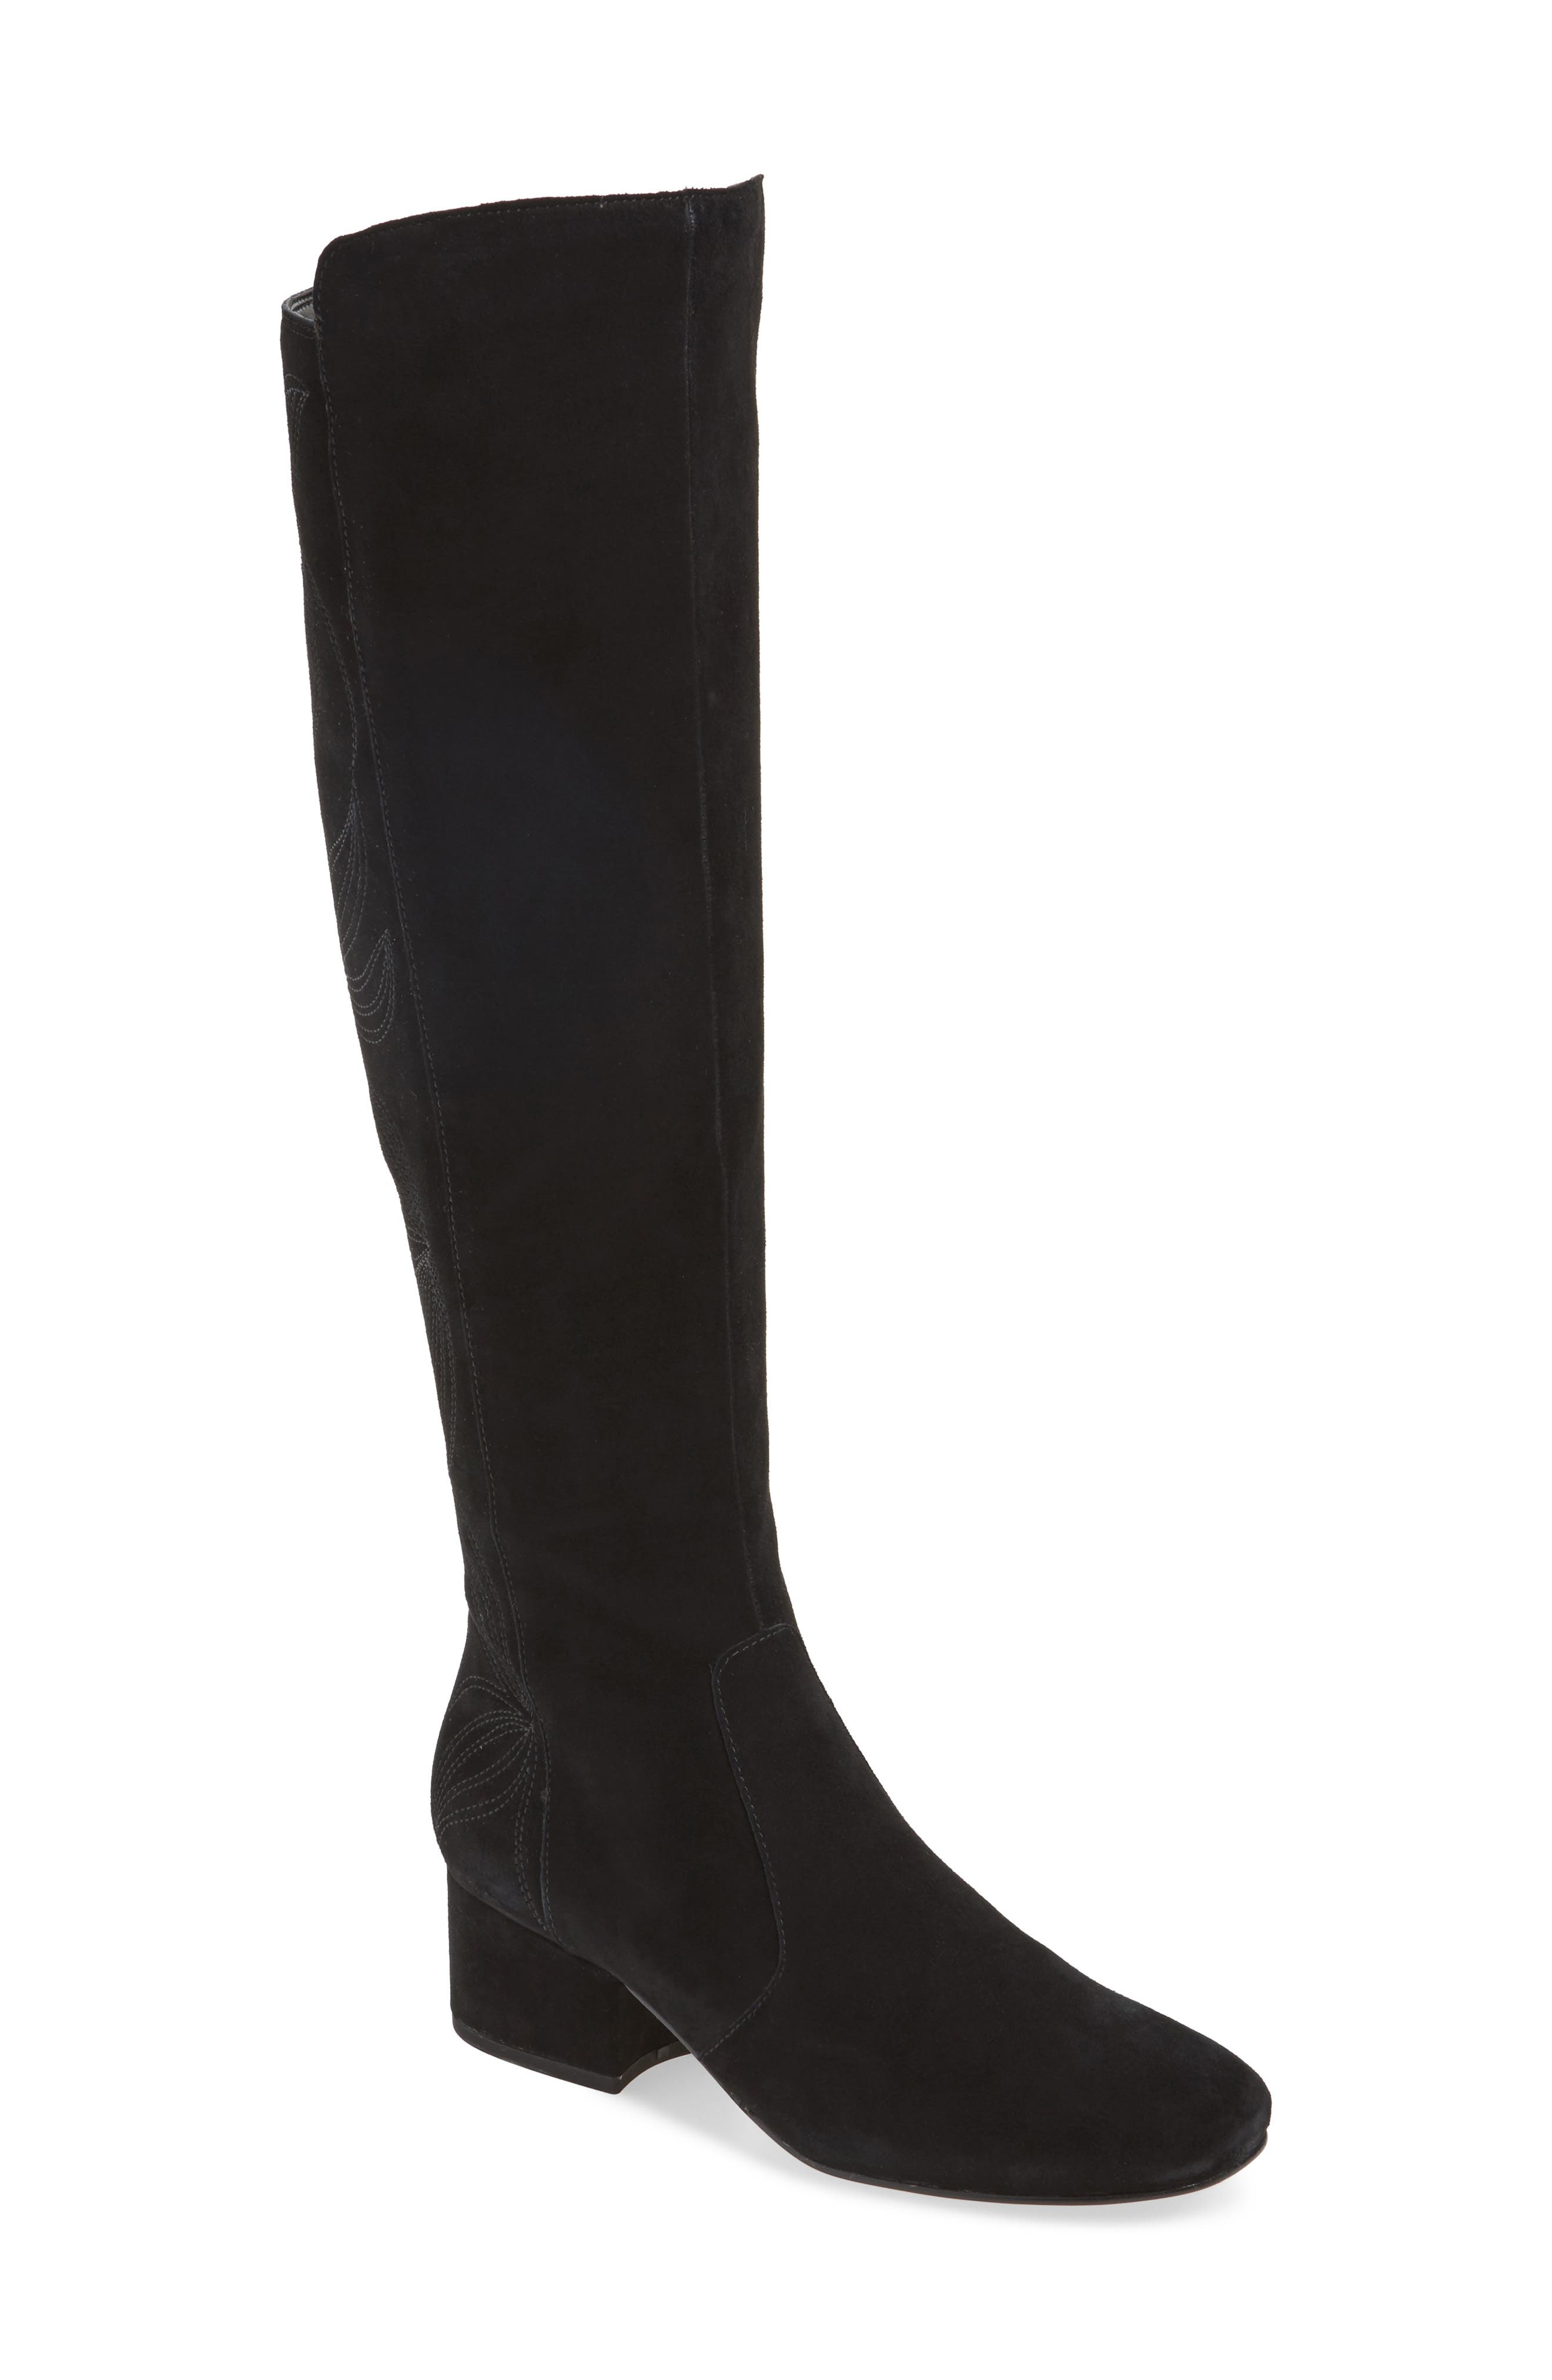 Tawnna Knee High Boot,                             Main thumbnail 1, color,                             001